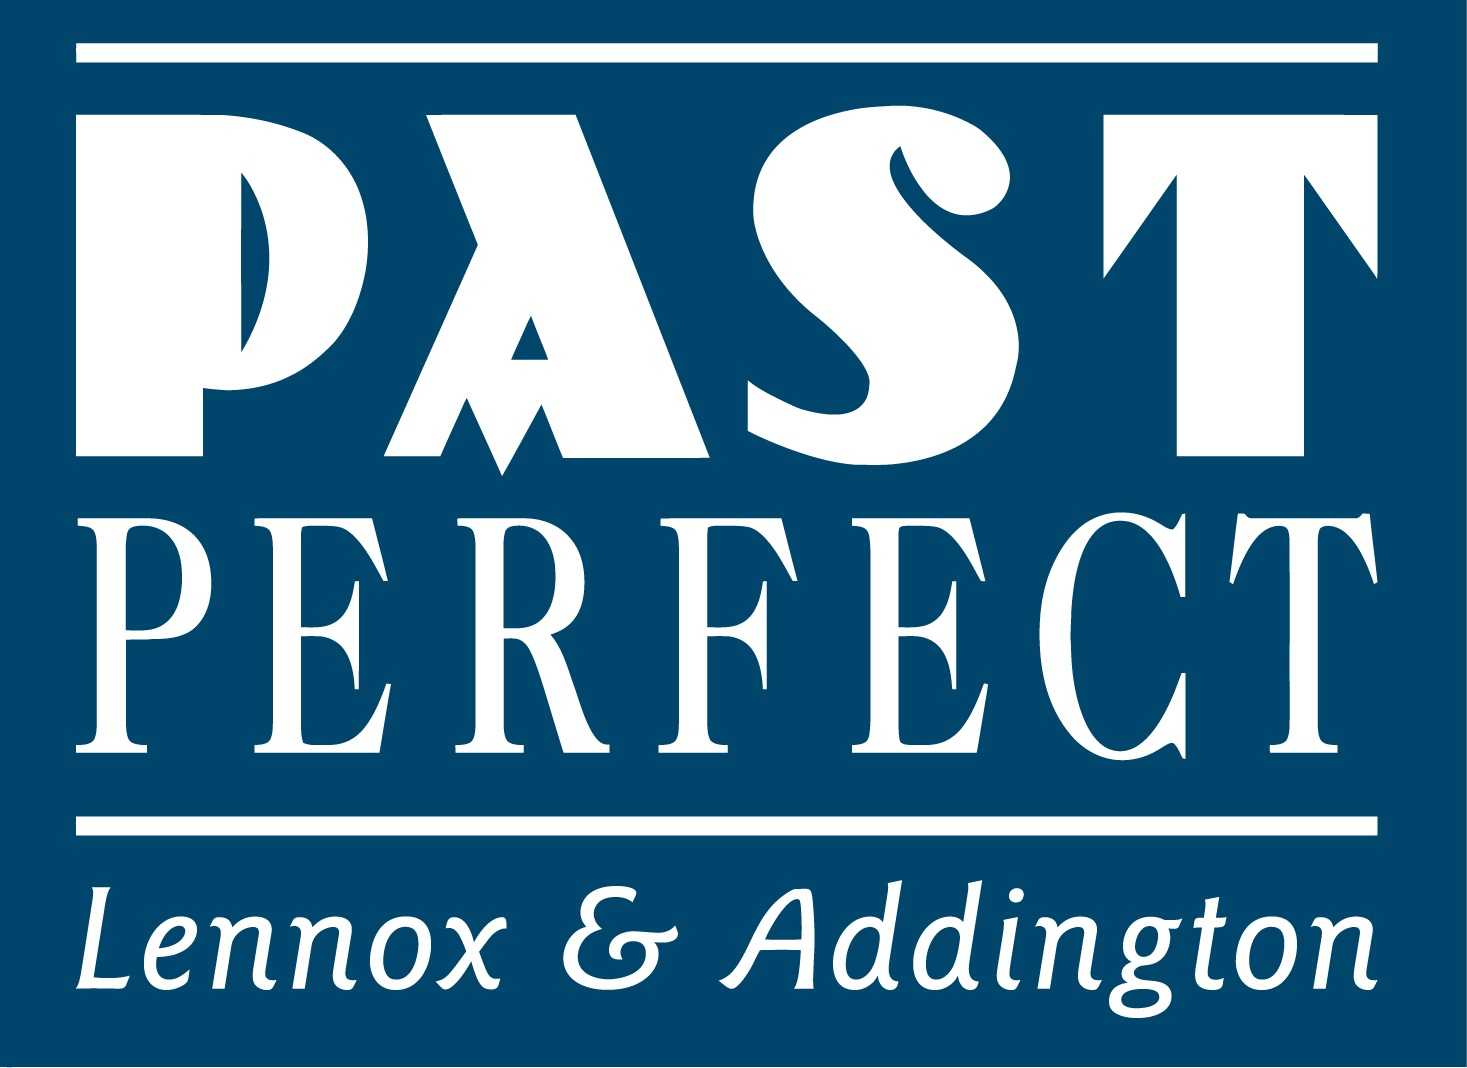 PastPerfectLogo.jpg